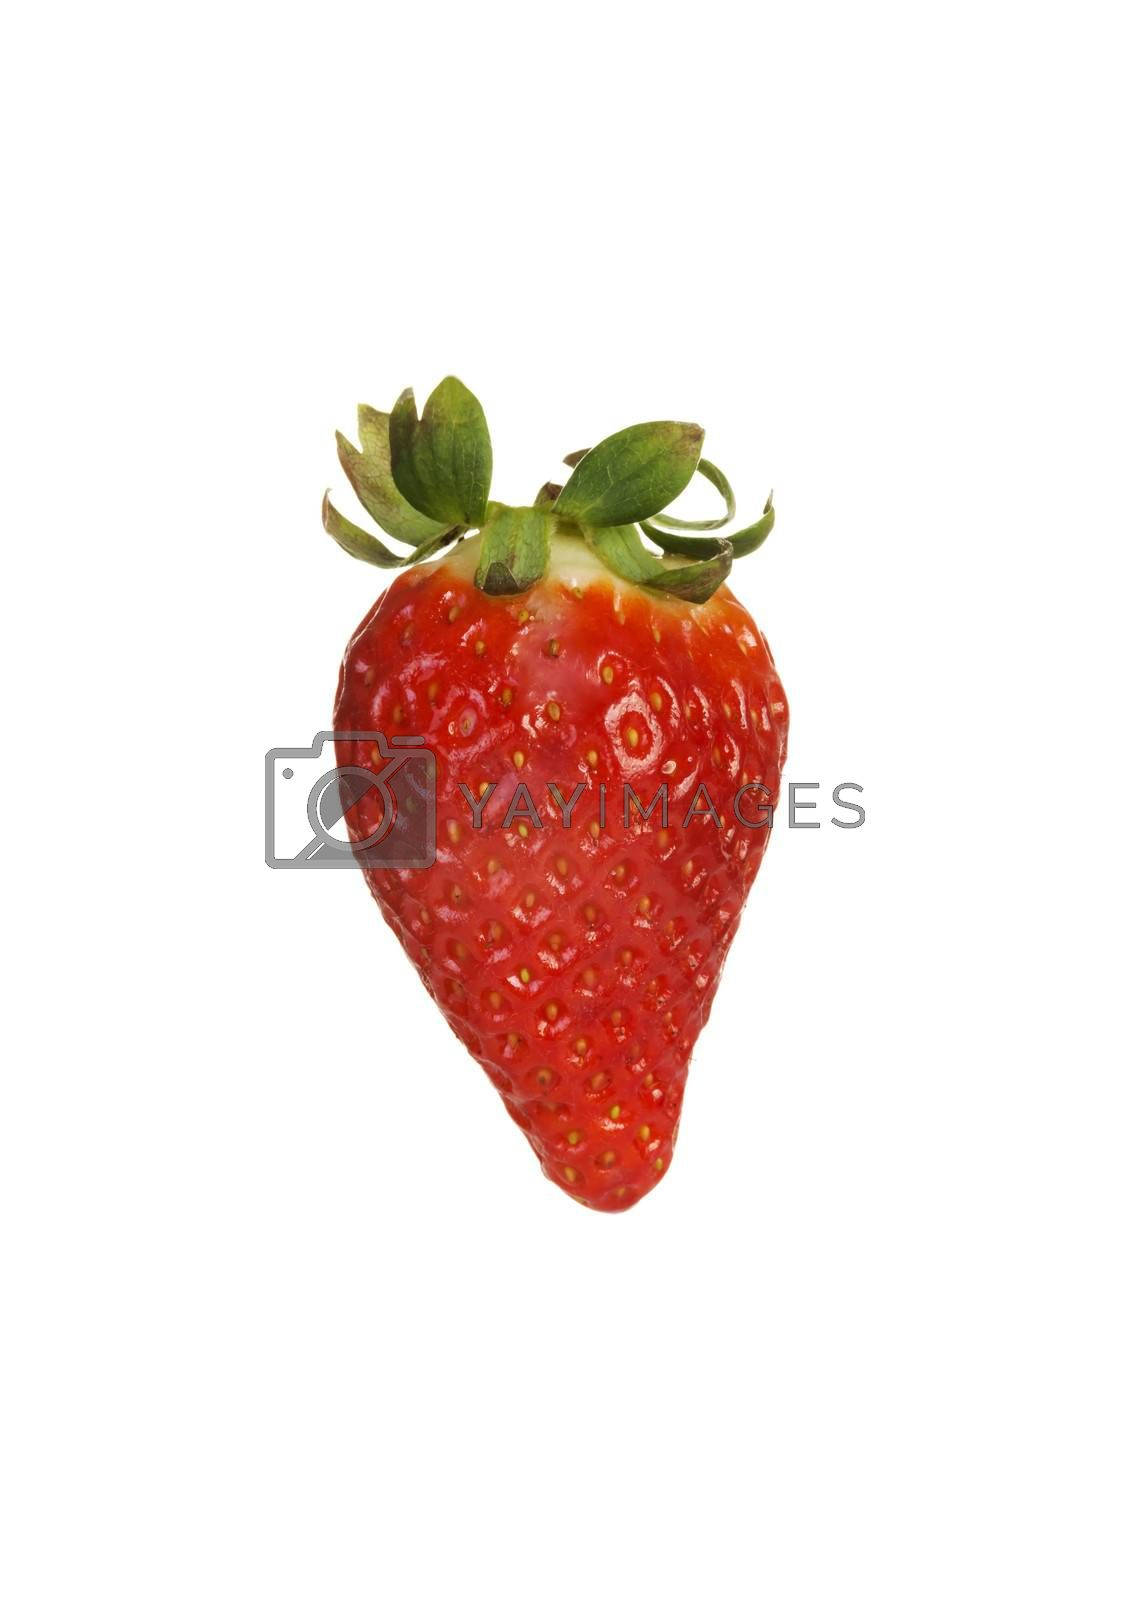 Royalty free image of One separated fresh strawberry. by BDS